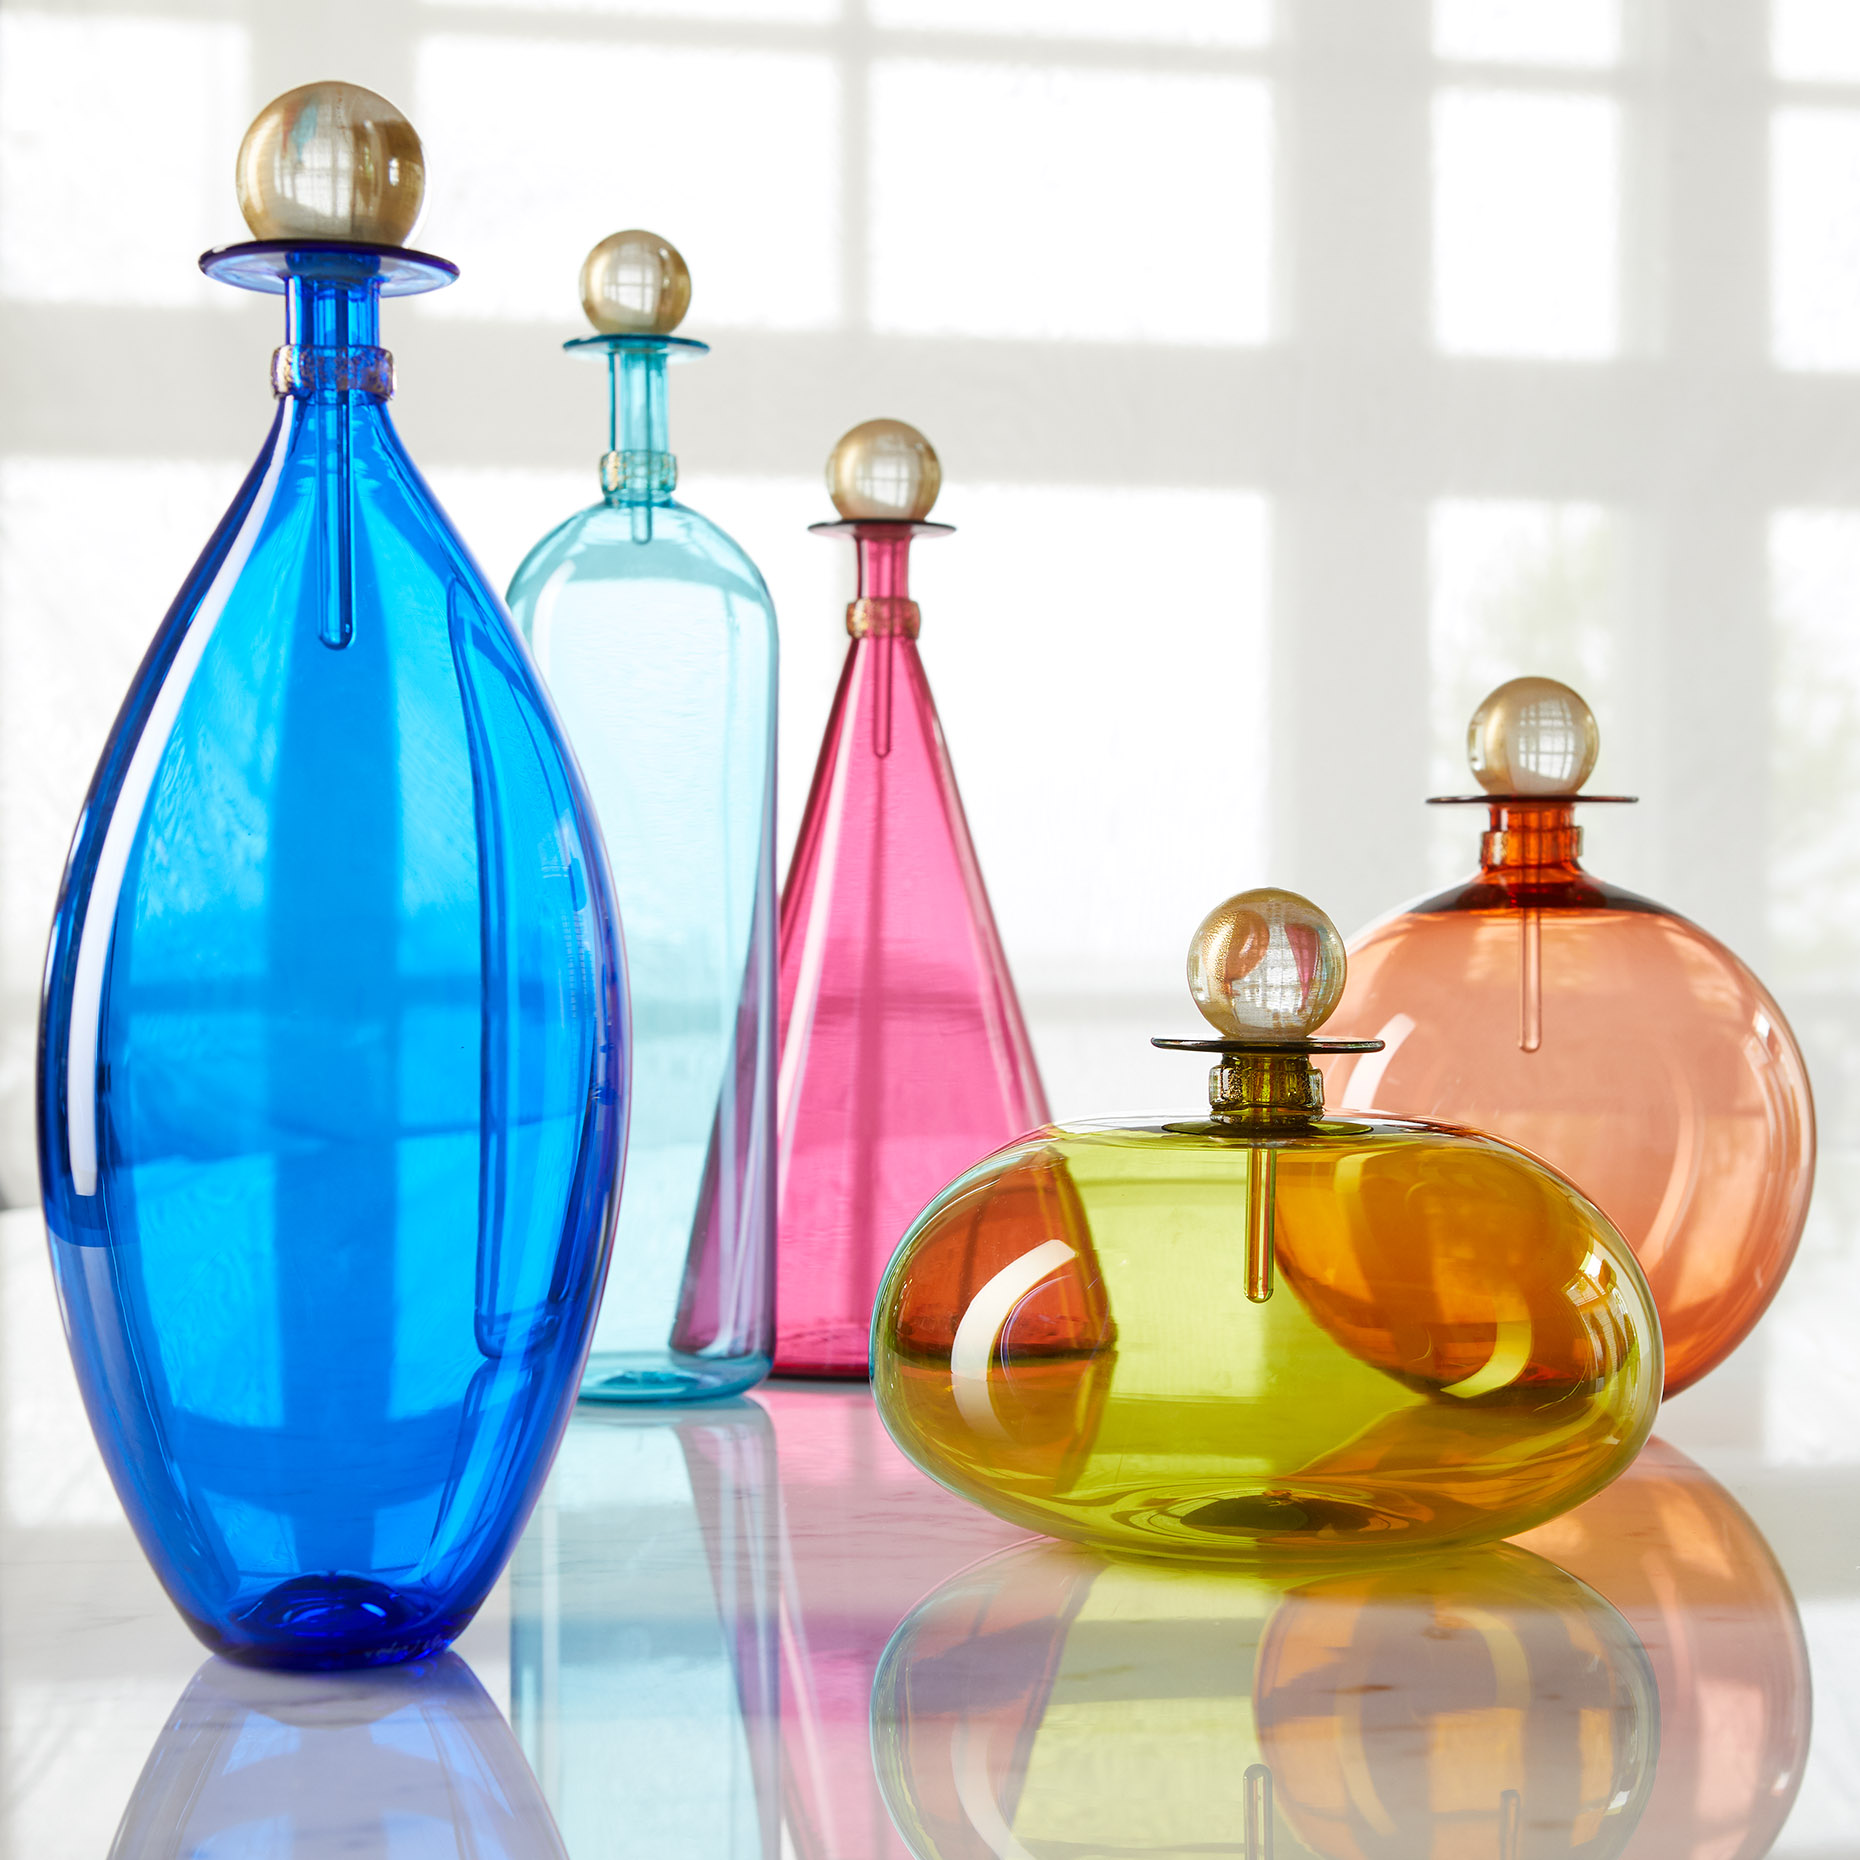 Vetrovero bottles for Artful Home